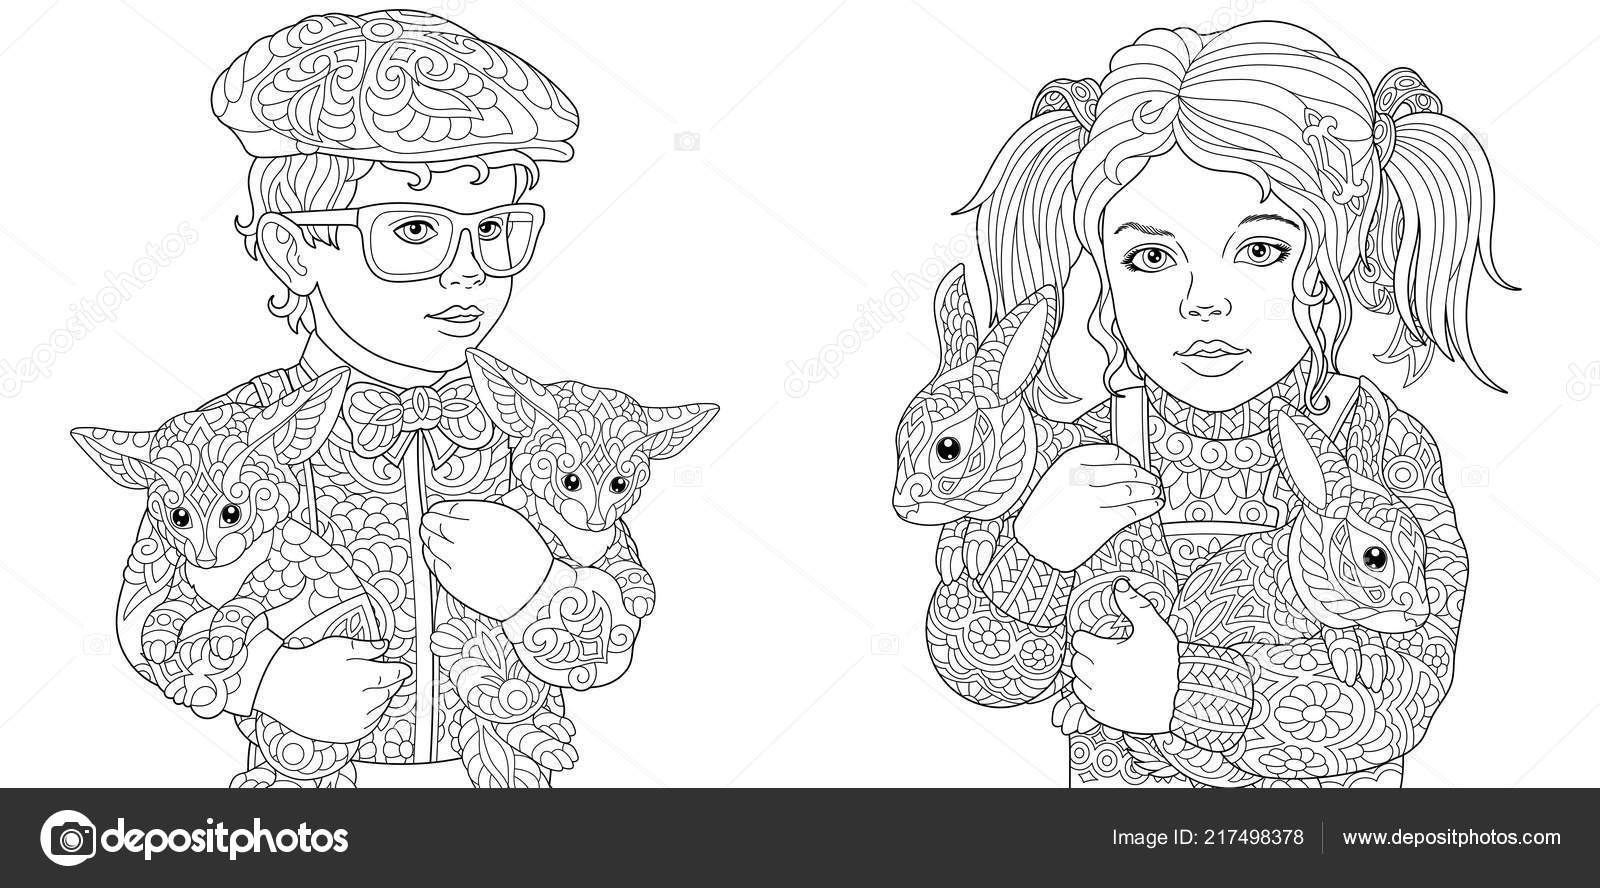 Girl Boy Coloring Pages Coloring Book Adults Colouring Pictures Kids ...